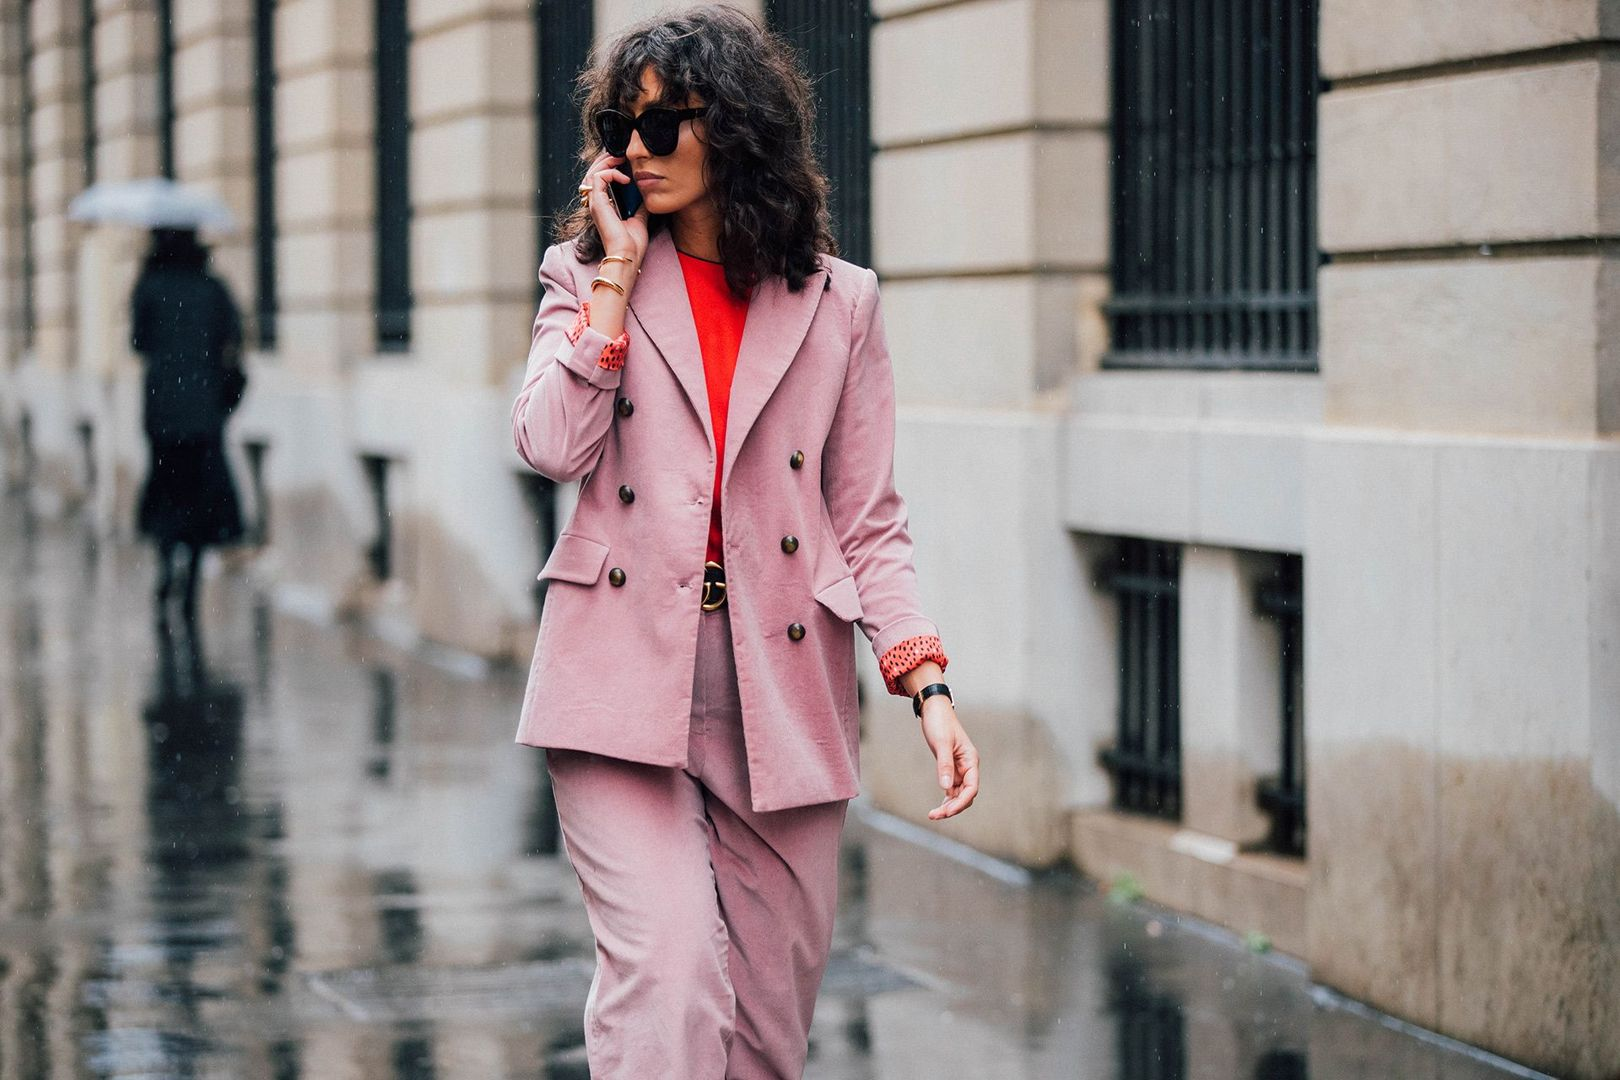 Trending: Suit Up In Style